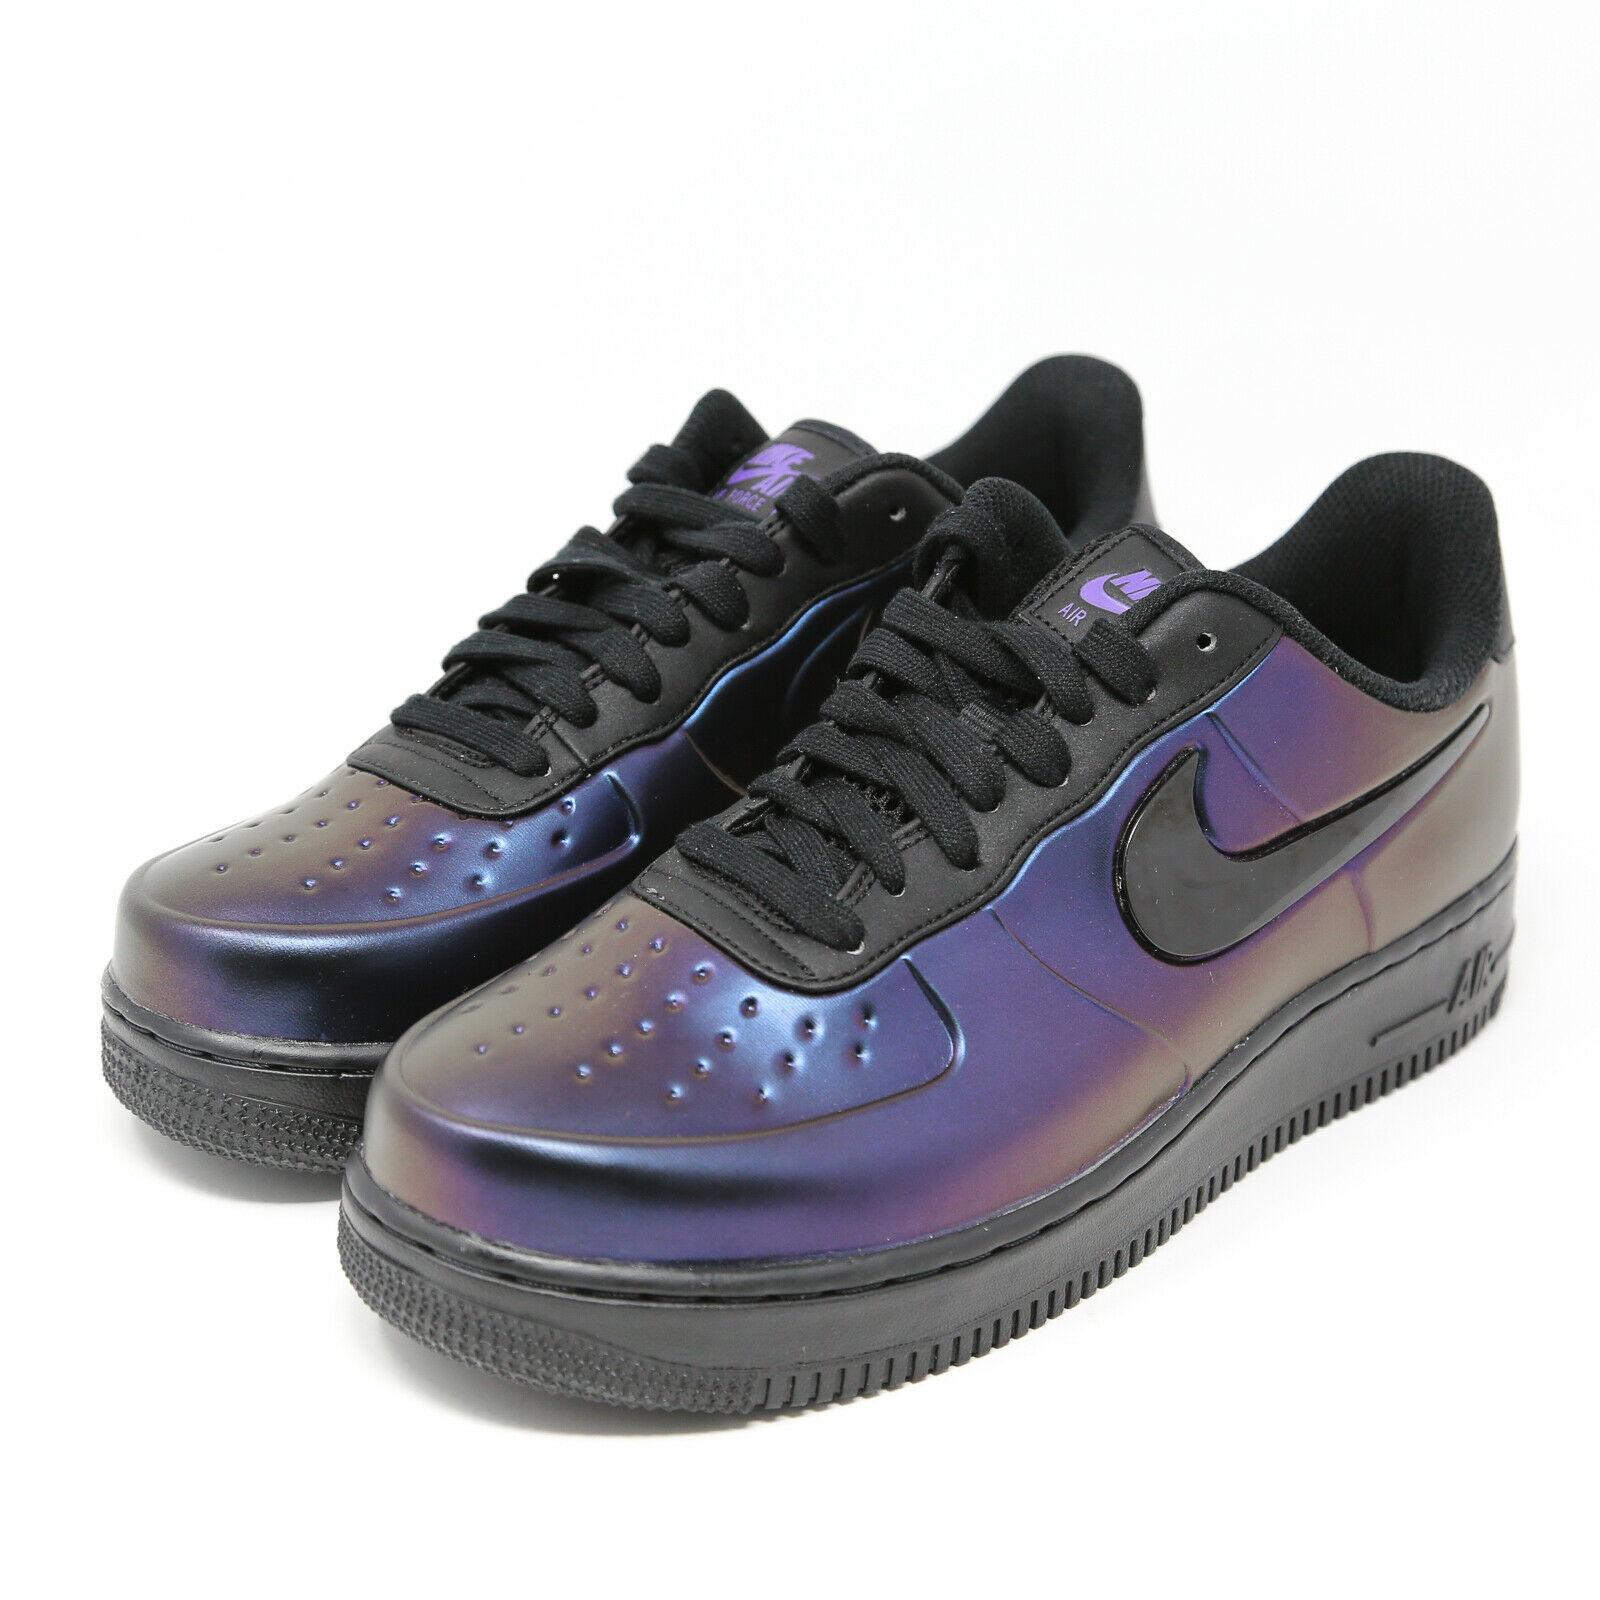 Nike Air Force 1 AF1 Foamposite pro Copa and 50 similar items